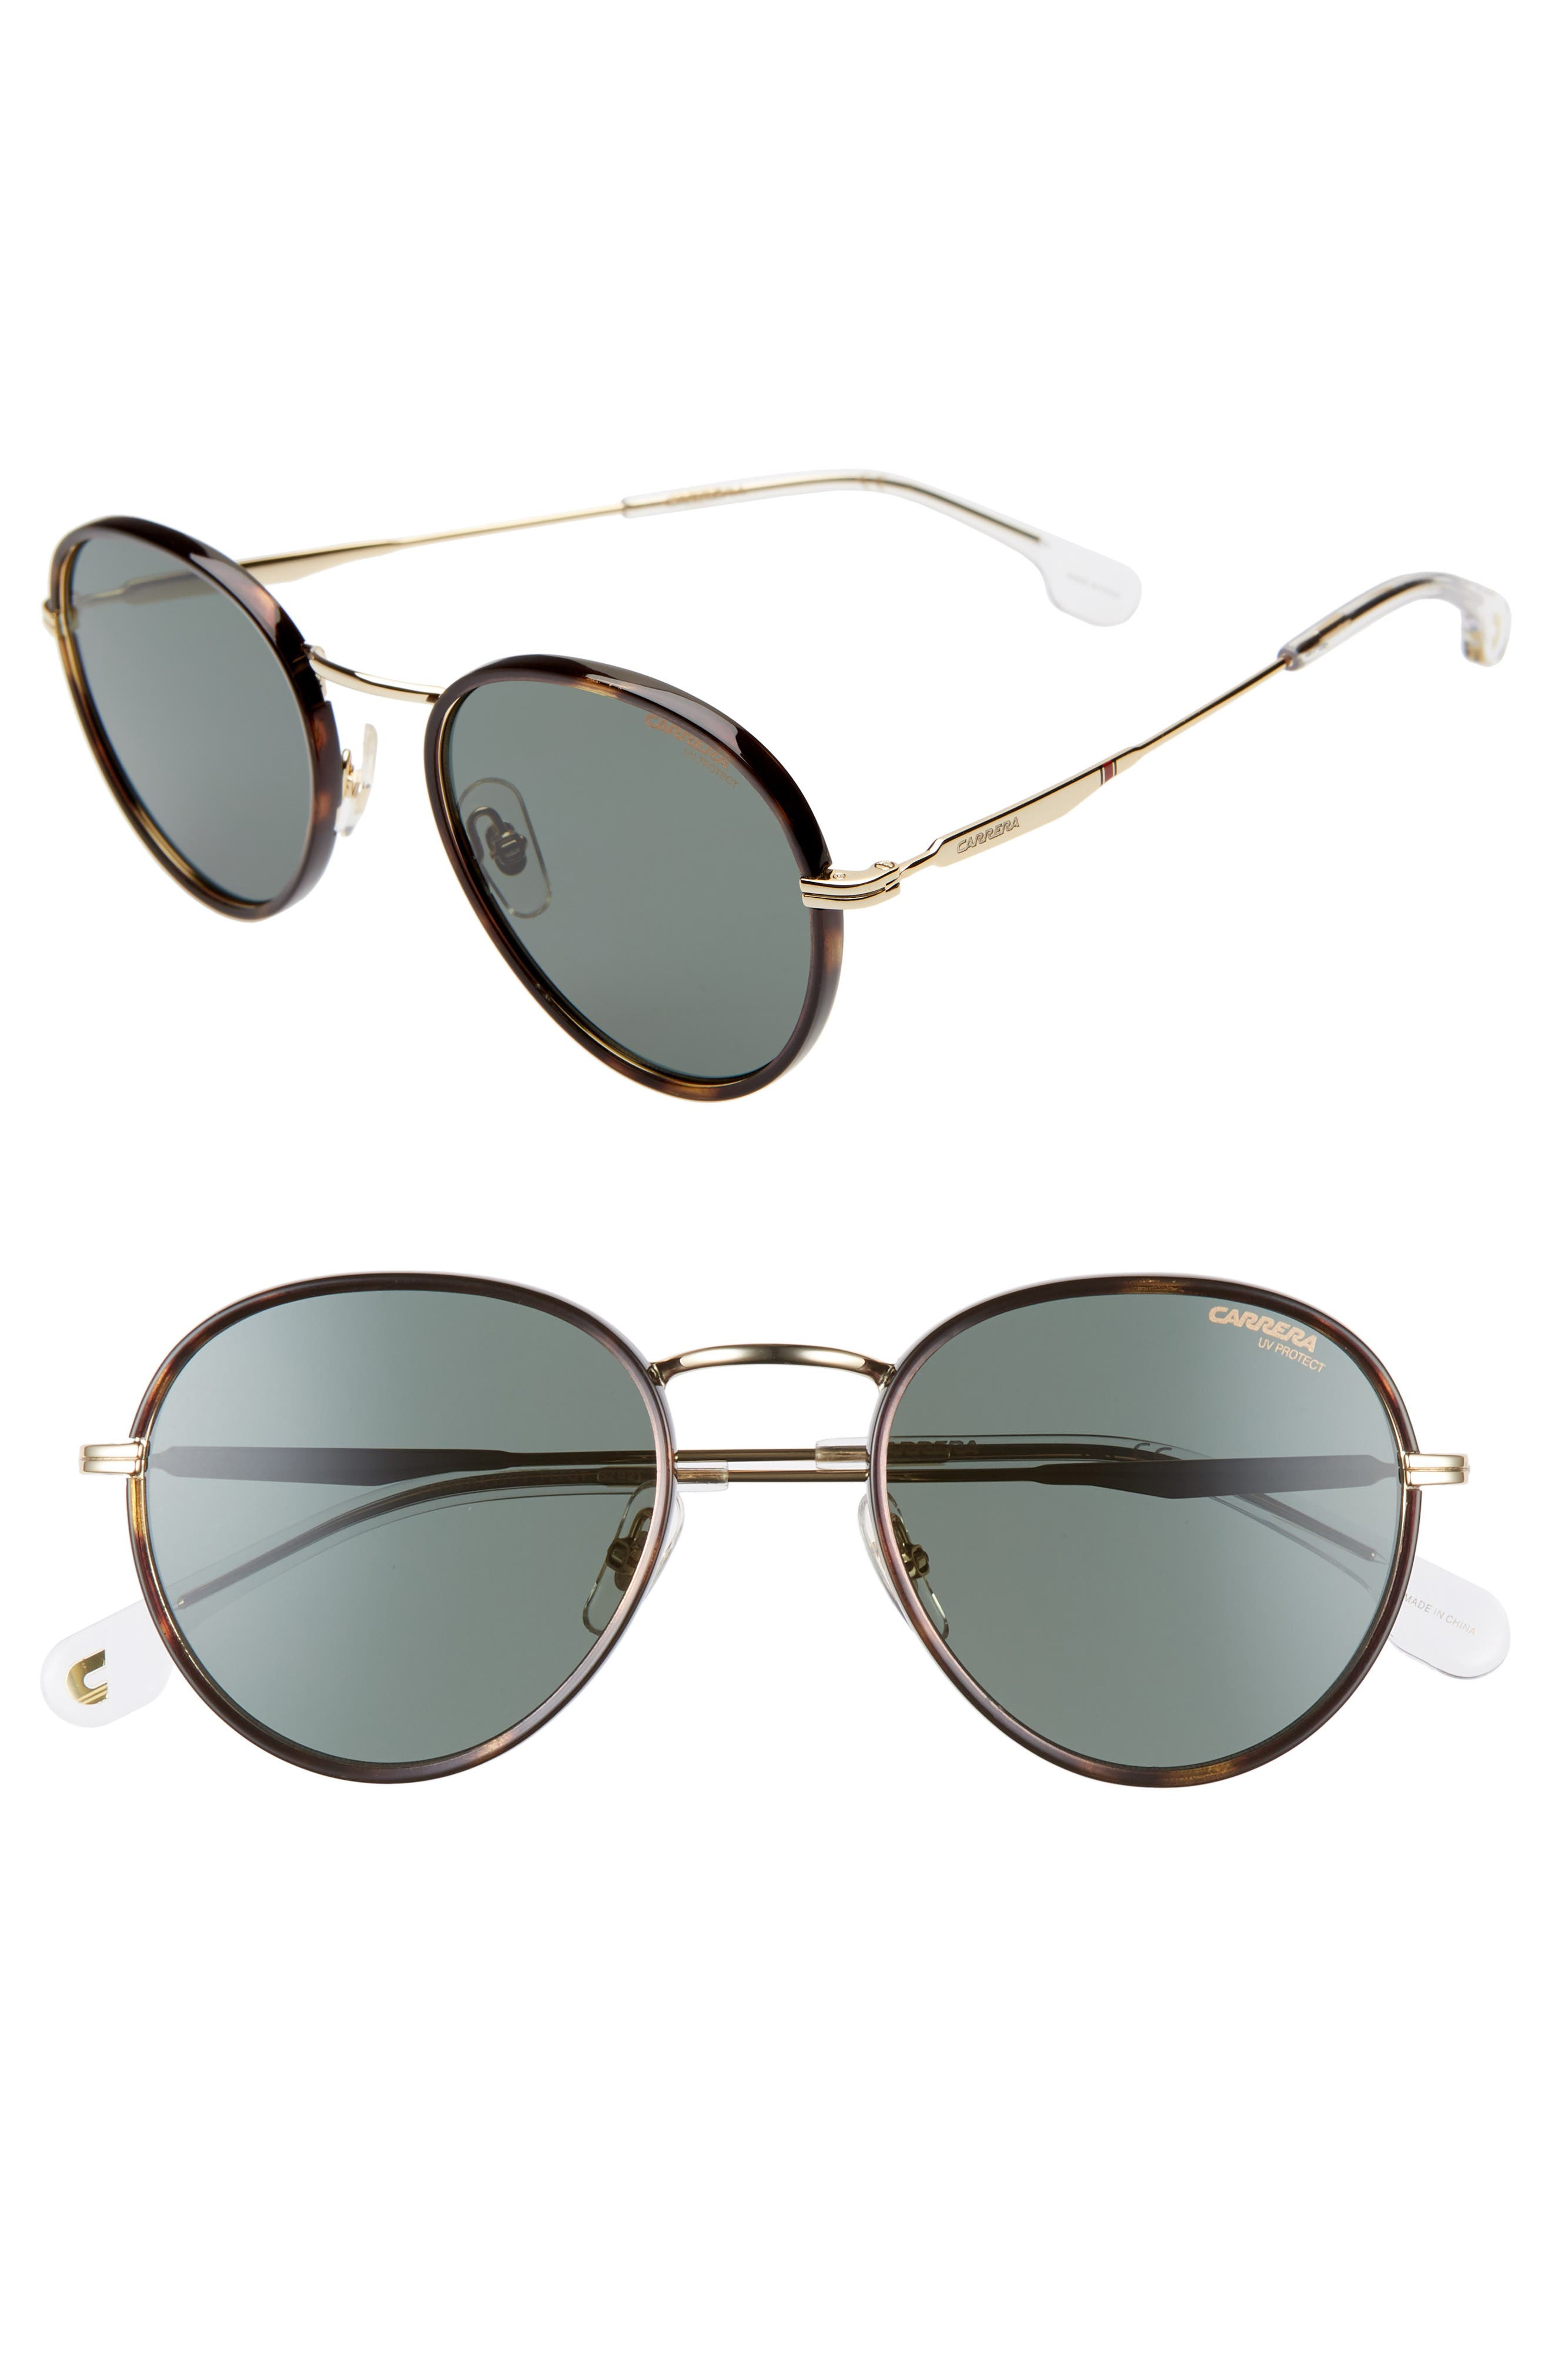 Carrera Eyewear 52Mm Round Sunglasses - Gold Green